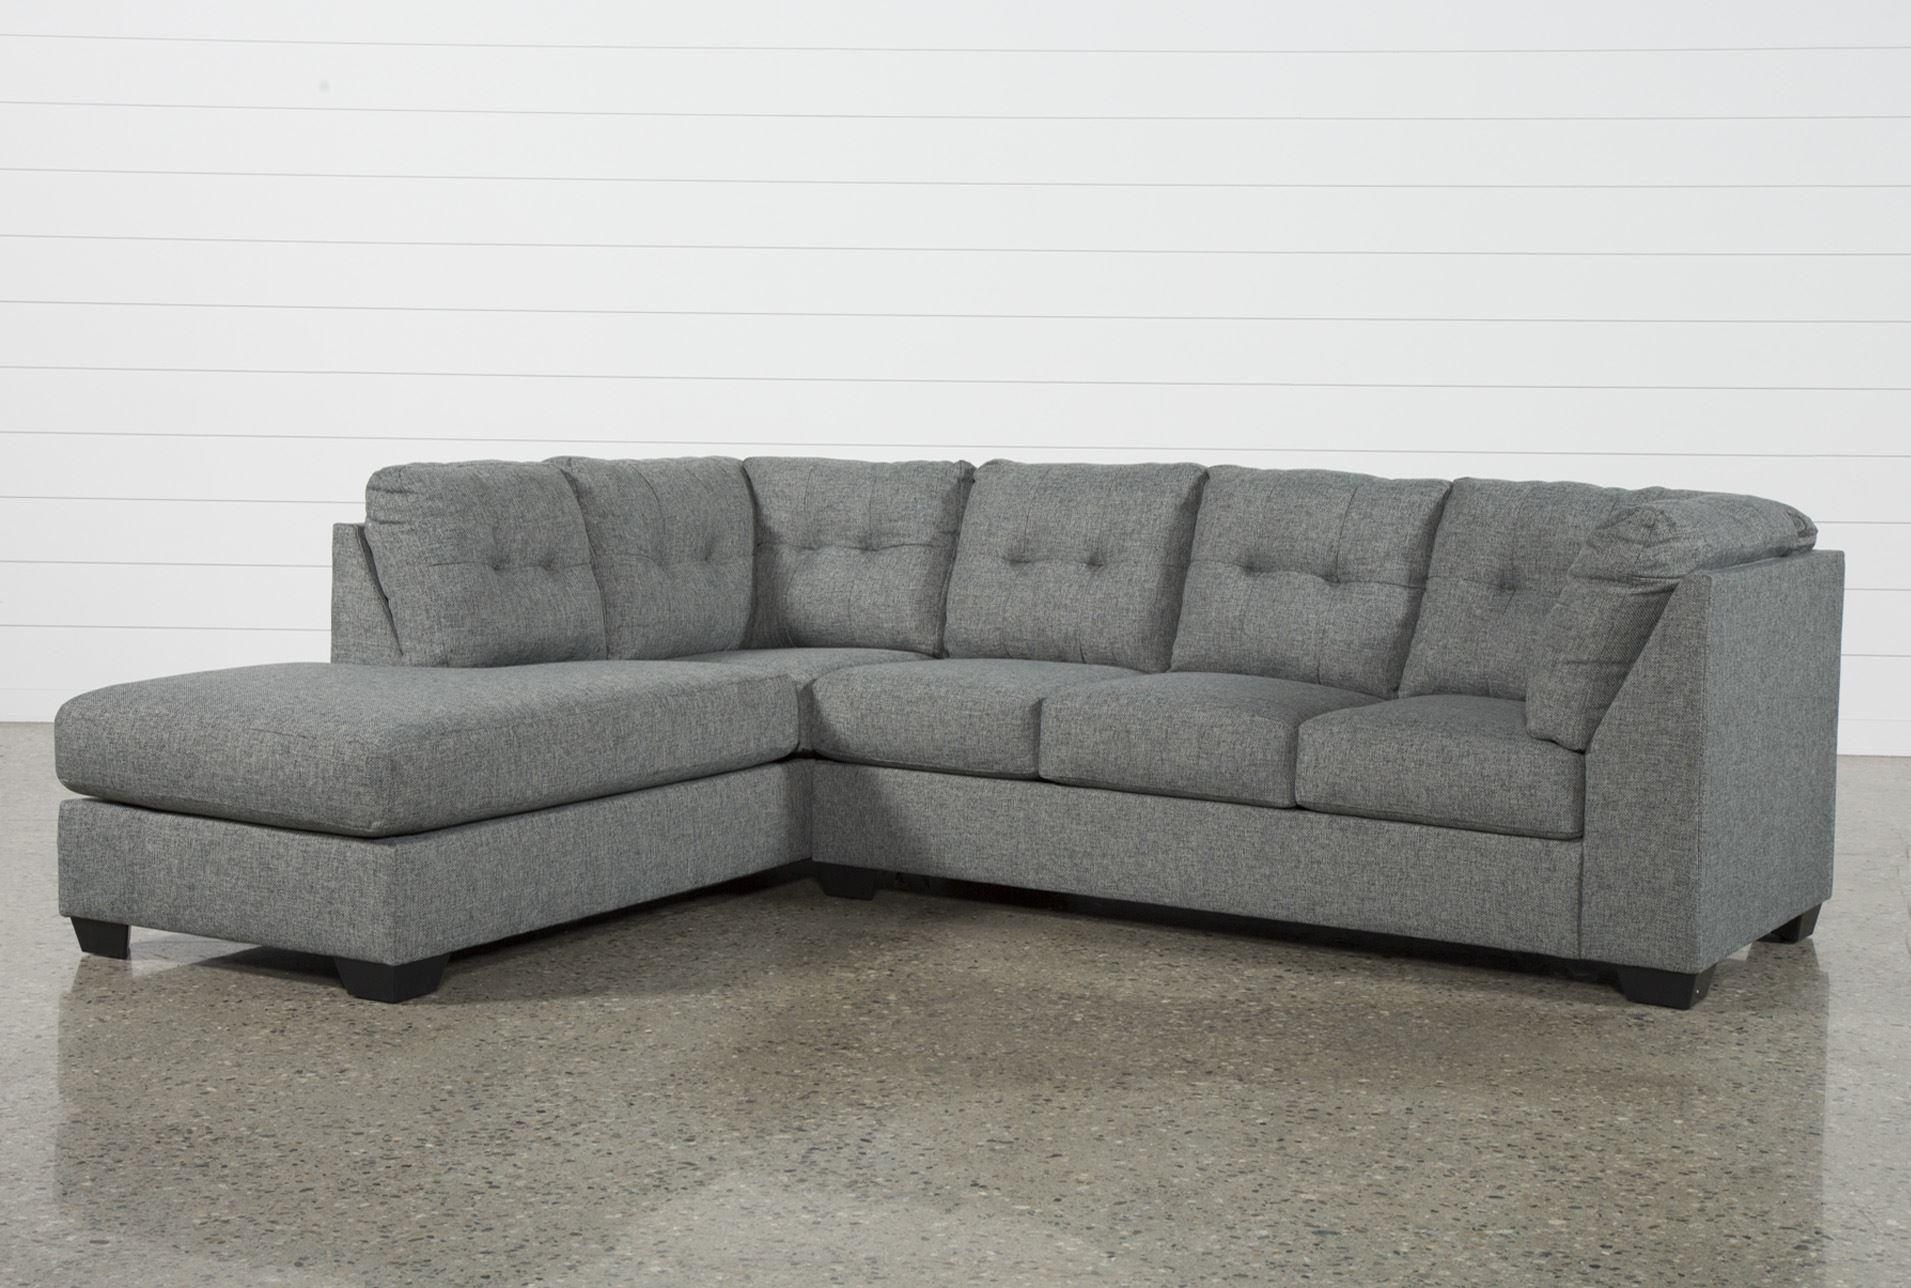 Arrowmask 2 Piece Sectional W/sleeper & Left Facing Chaise Intended For Lucy Grey 2 Piece Sectionals With Laf Chaise (View 3 of 25)